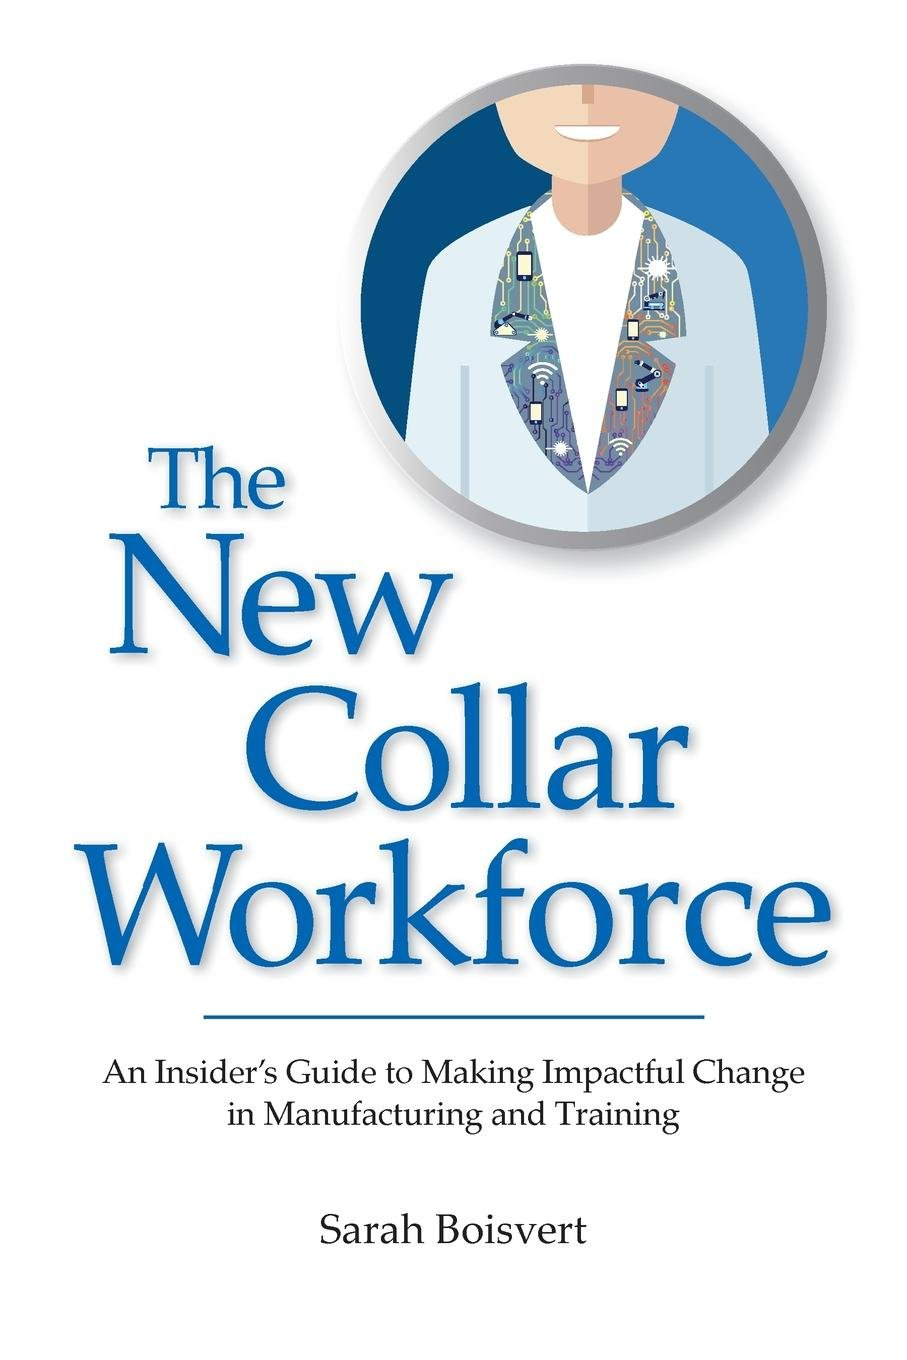 Download The New Collar Workforce: An Insider's Guide to Making Impactful Changes to Manufacturing and Training pdf